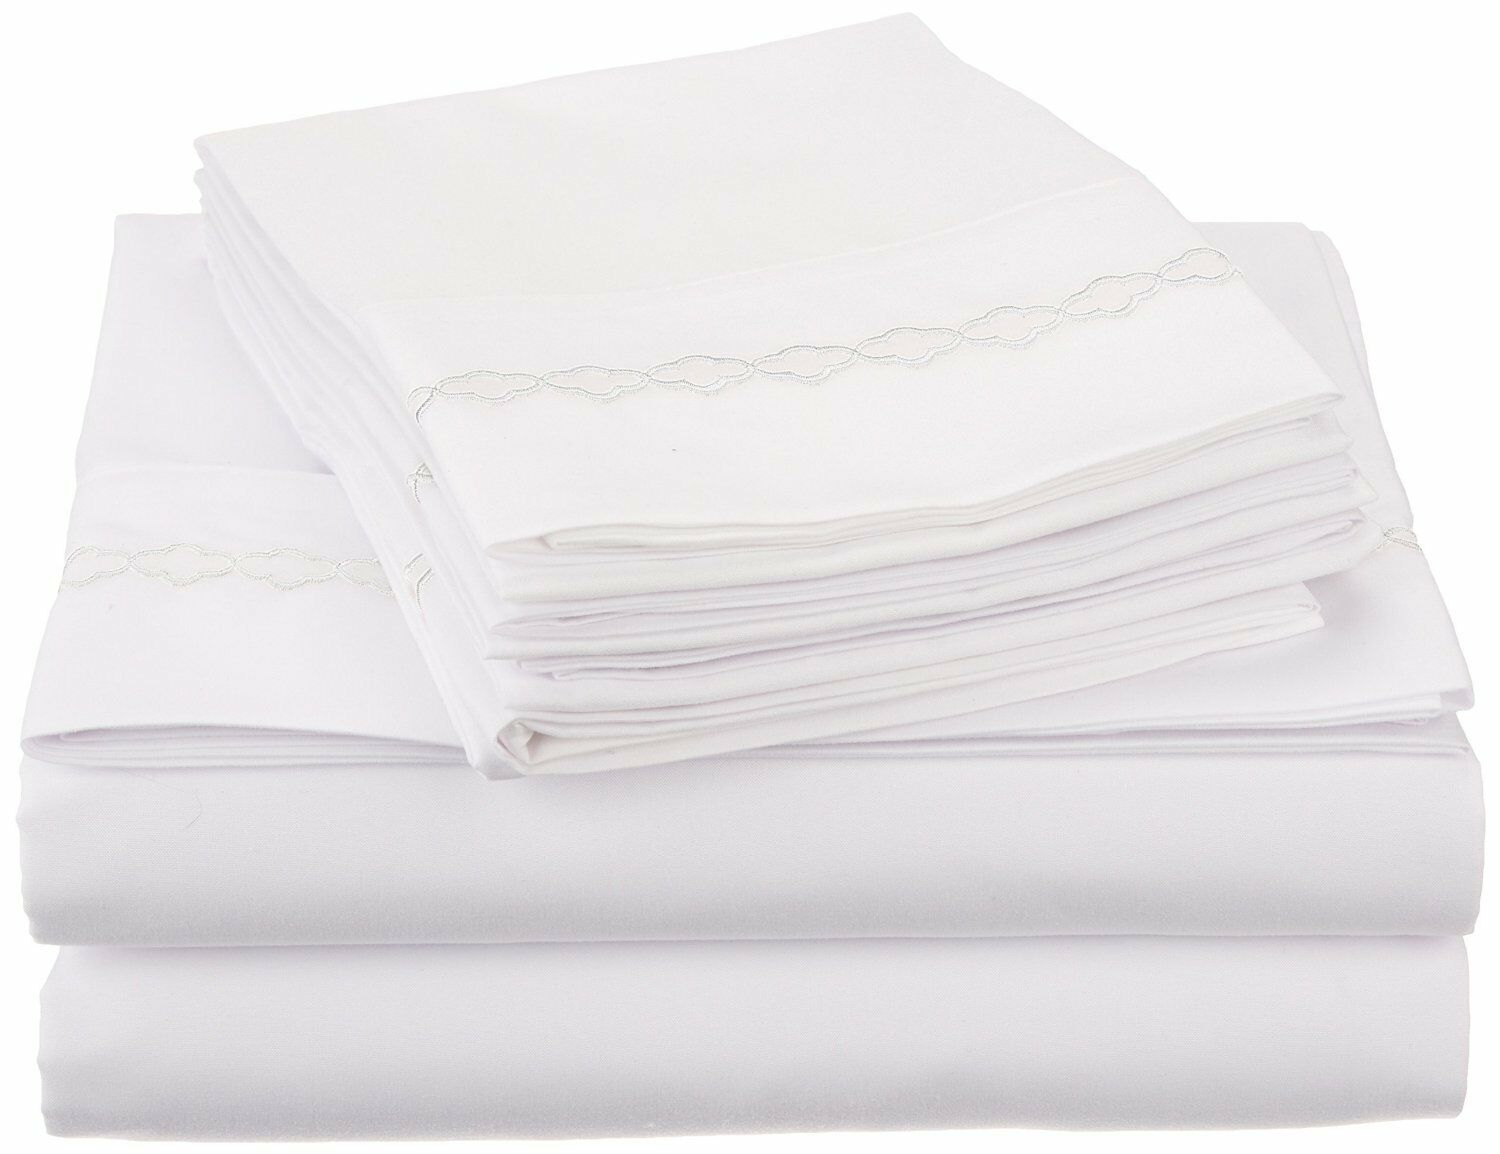 WRINKLE FREE 6PC SHEET SET SOLID-CLOUDS EMBROIDERY-WHITE WHITE